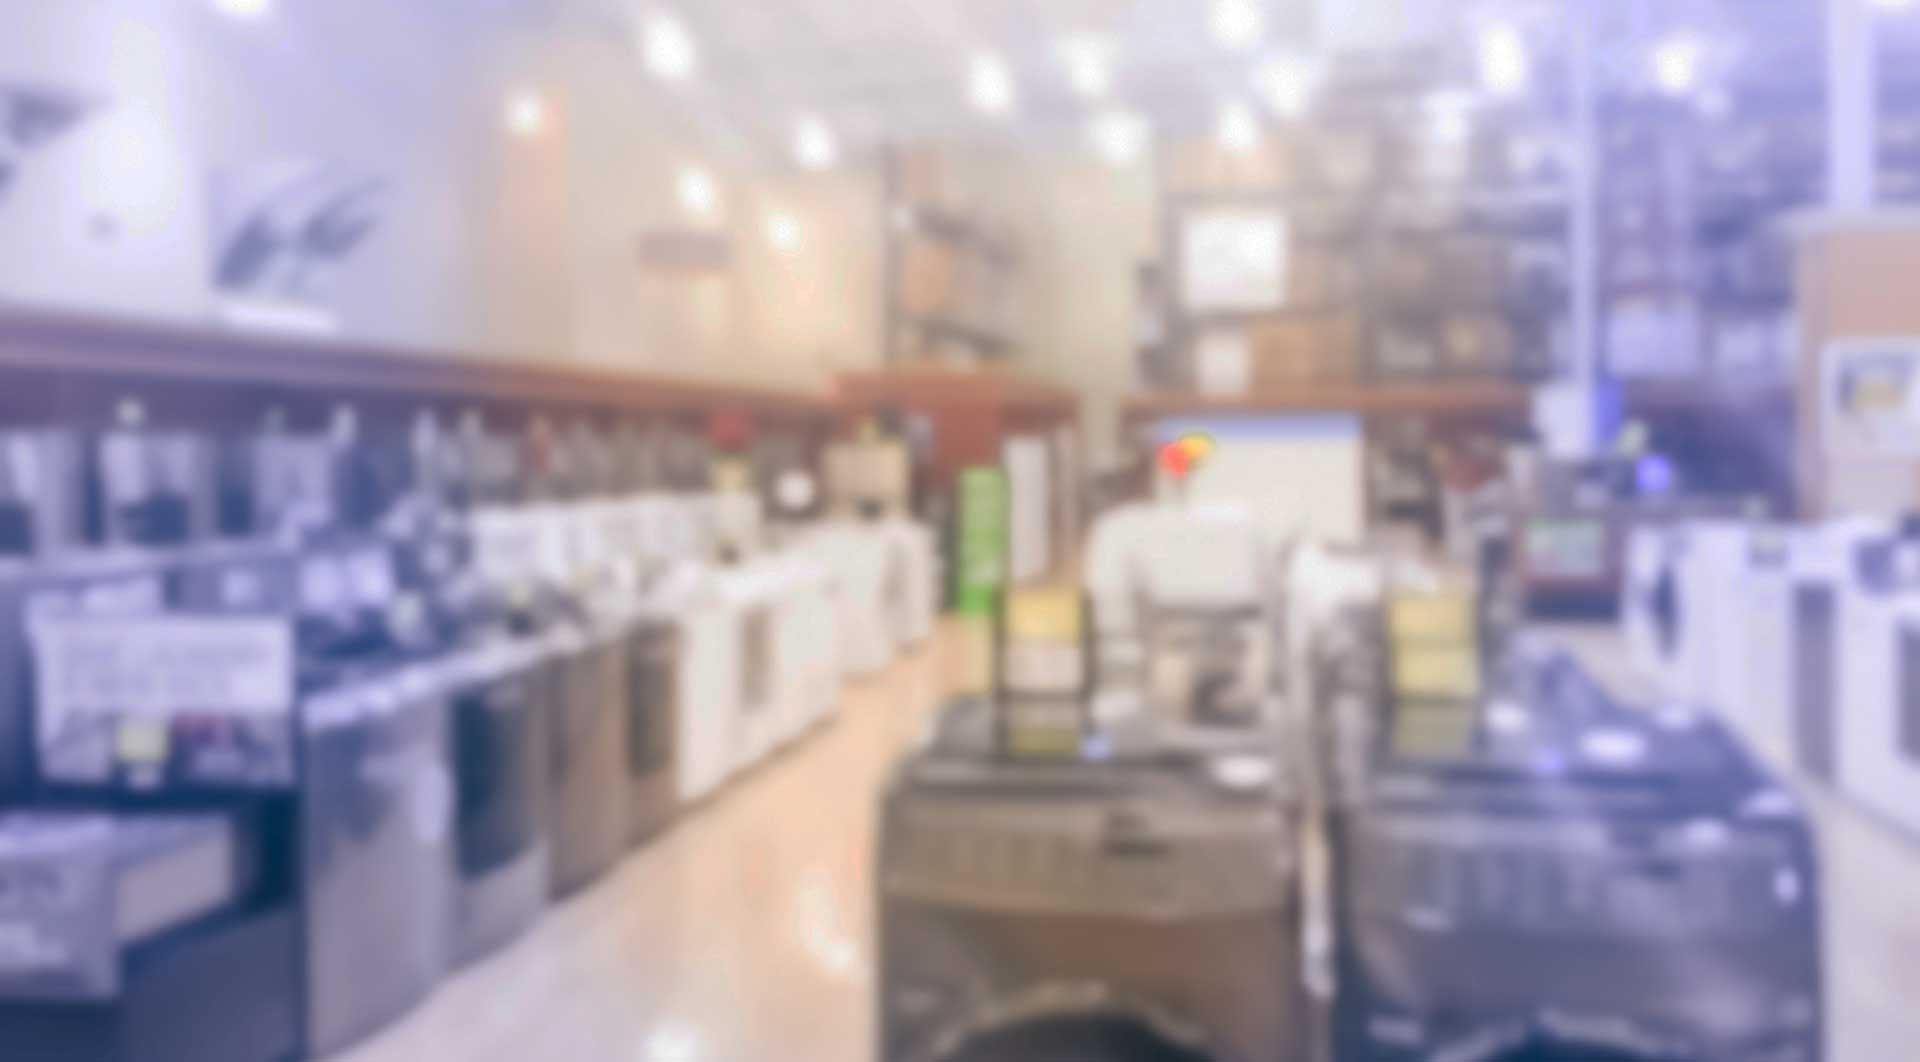 Household appliances at a retail store